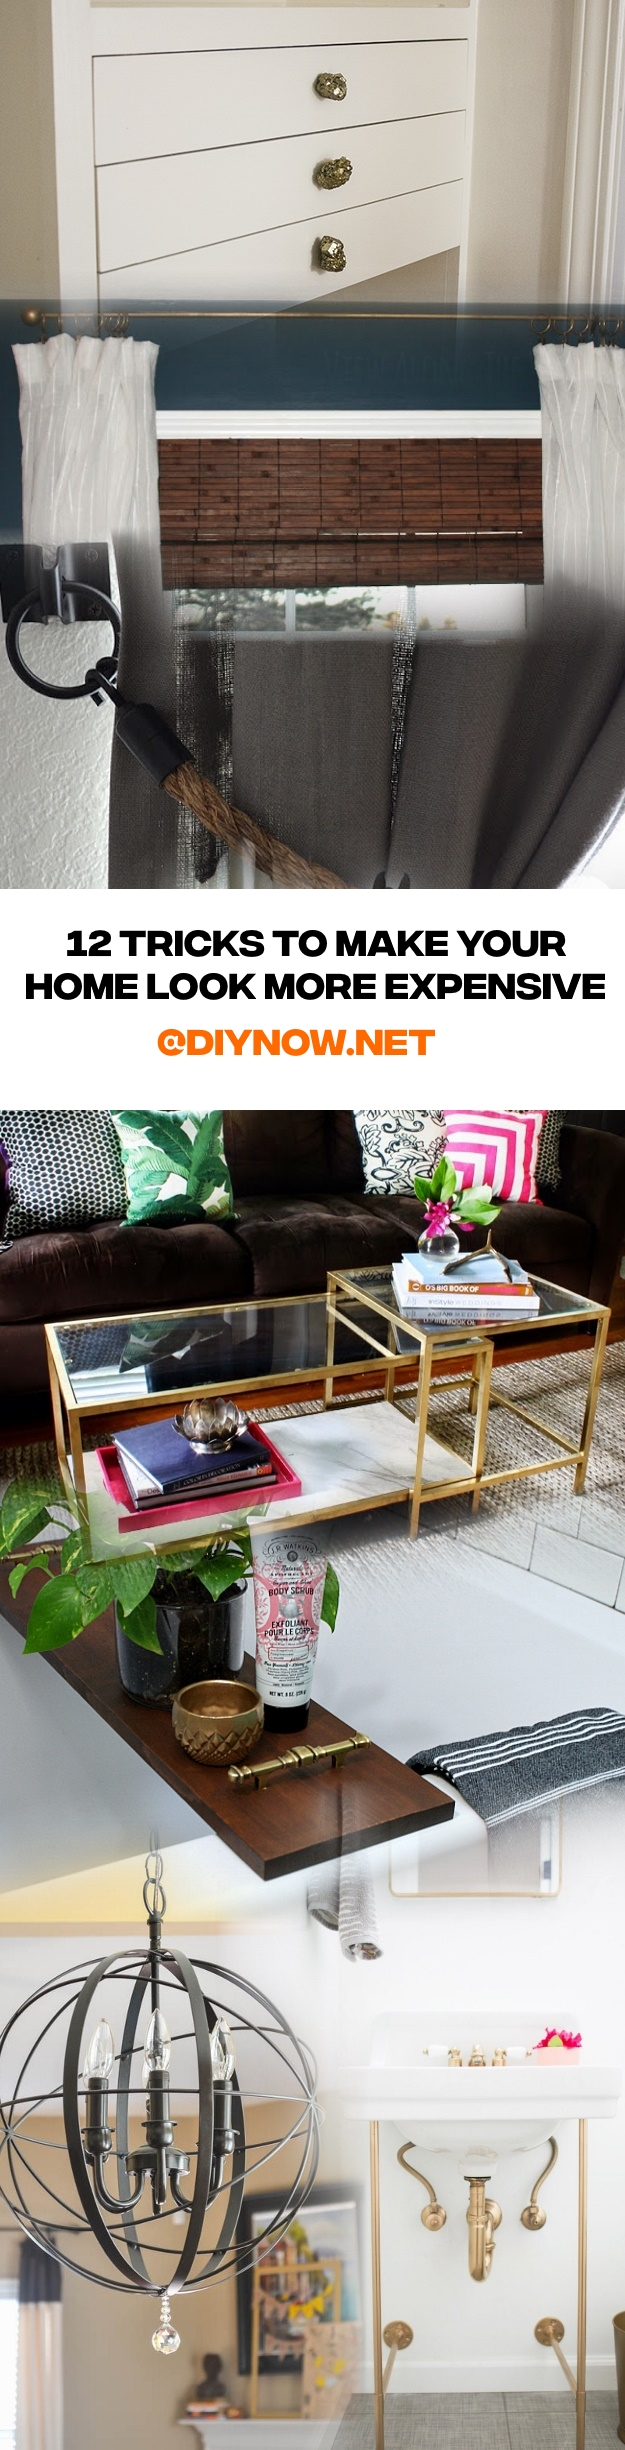 12 Tricks to Make Your Home Look More Expensive